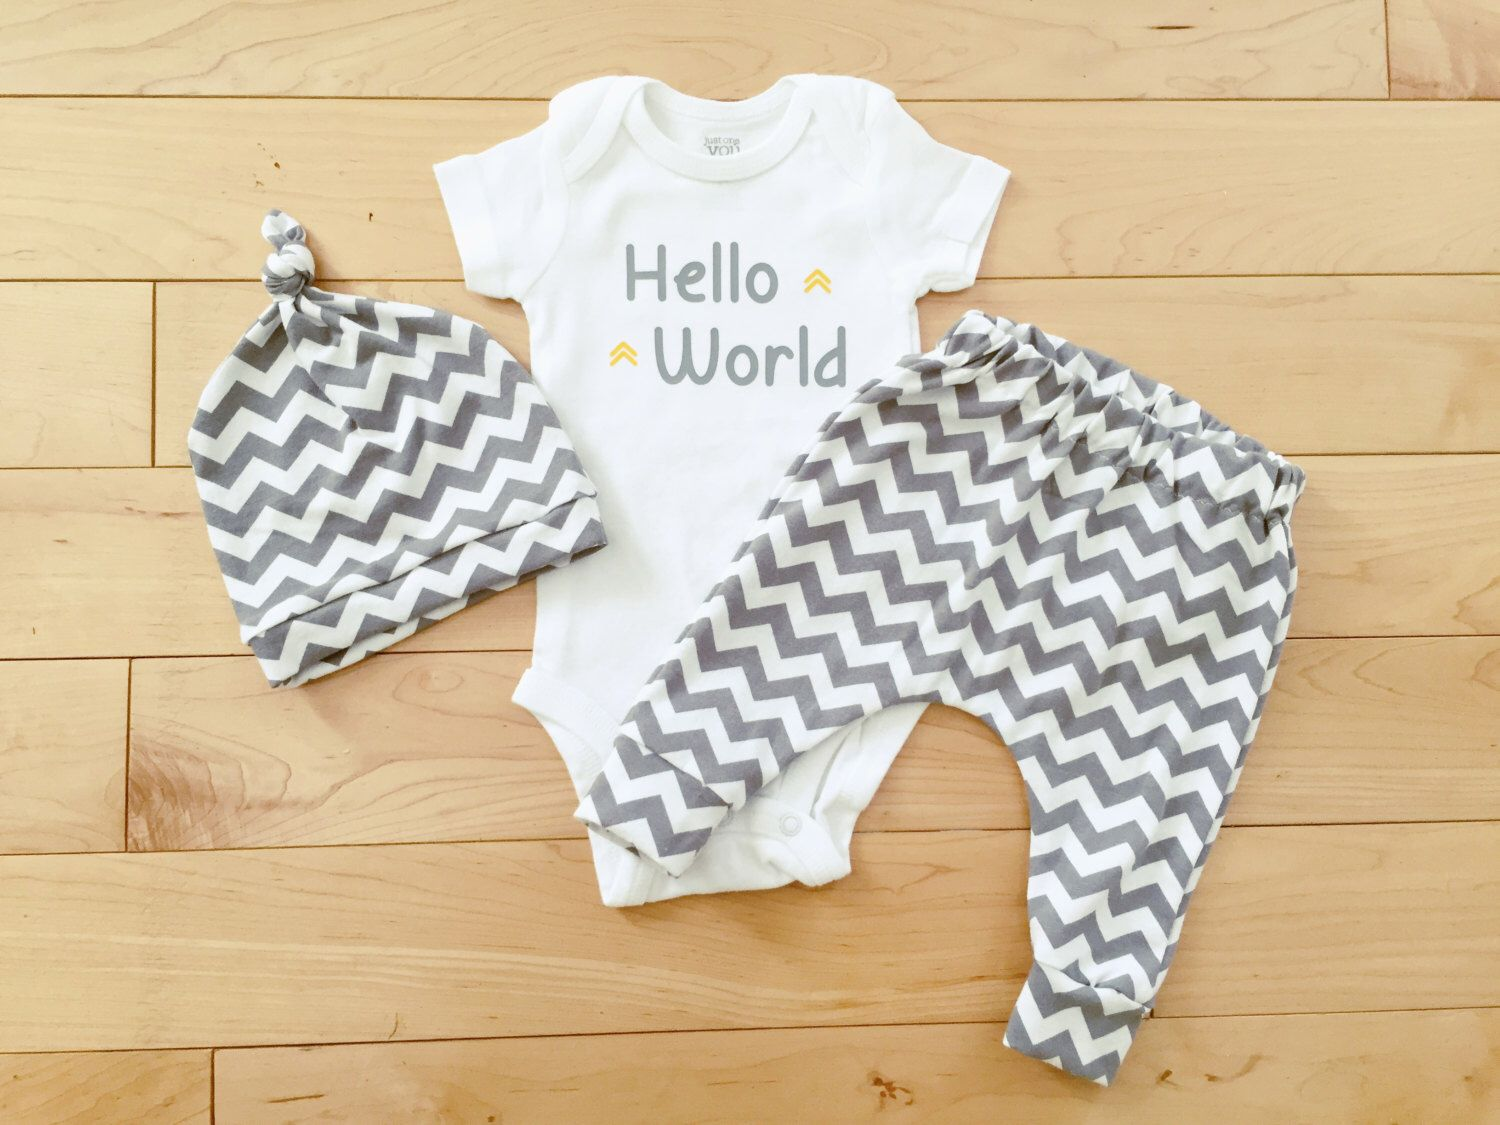 ec25aa975cf2 Gender Neutral Baby Coming Home Outfit   Unisex Baby Clothes   Knot Hat    Grey Chevron